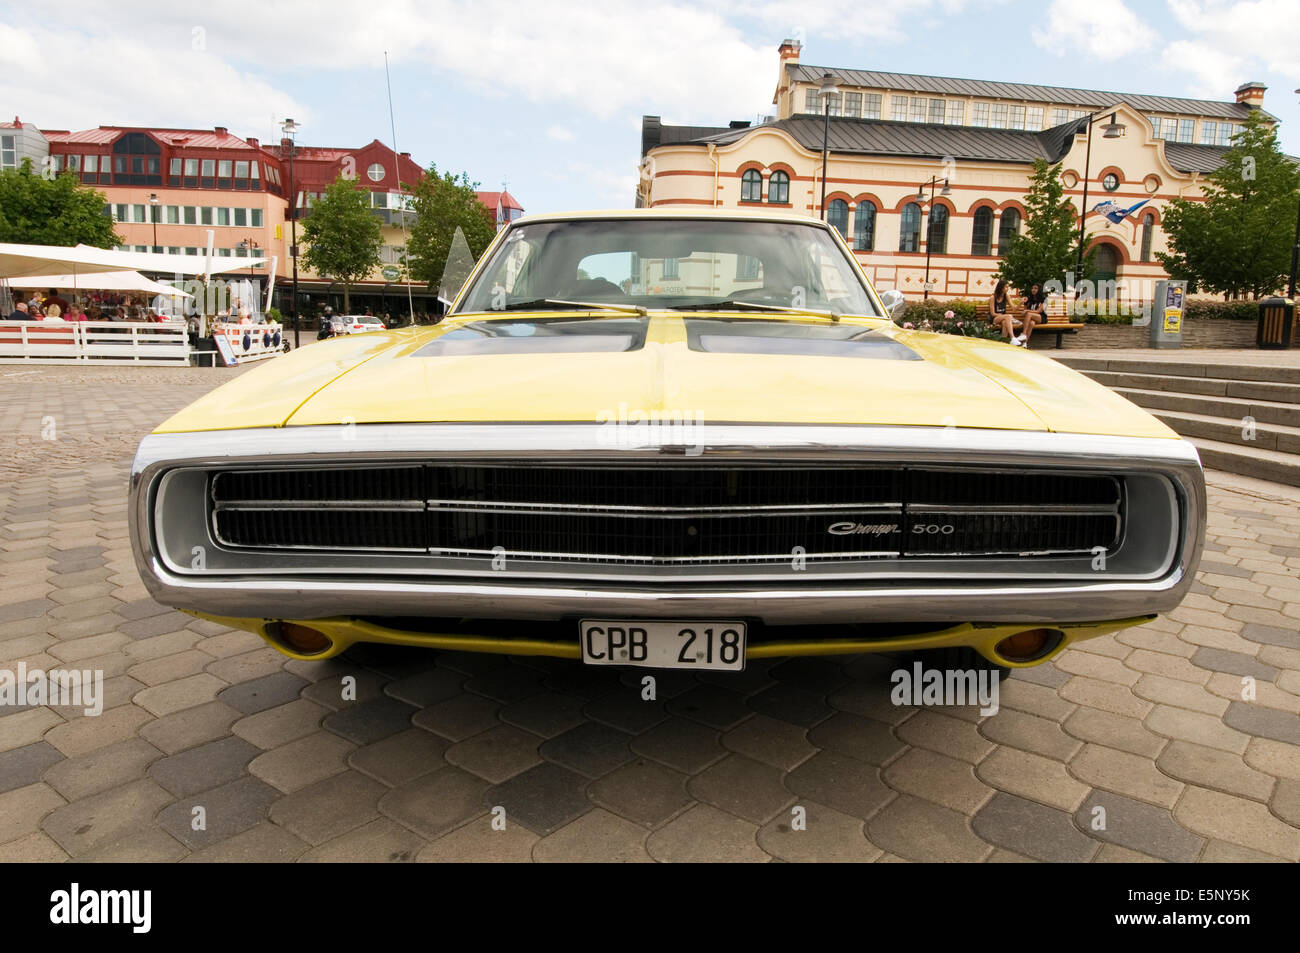 dodge charger 1970 muscle car classic cars american huge large big grill front end - Stock Image